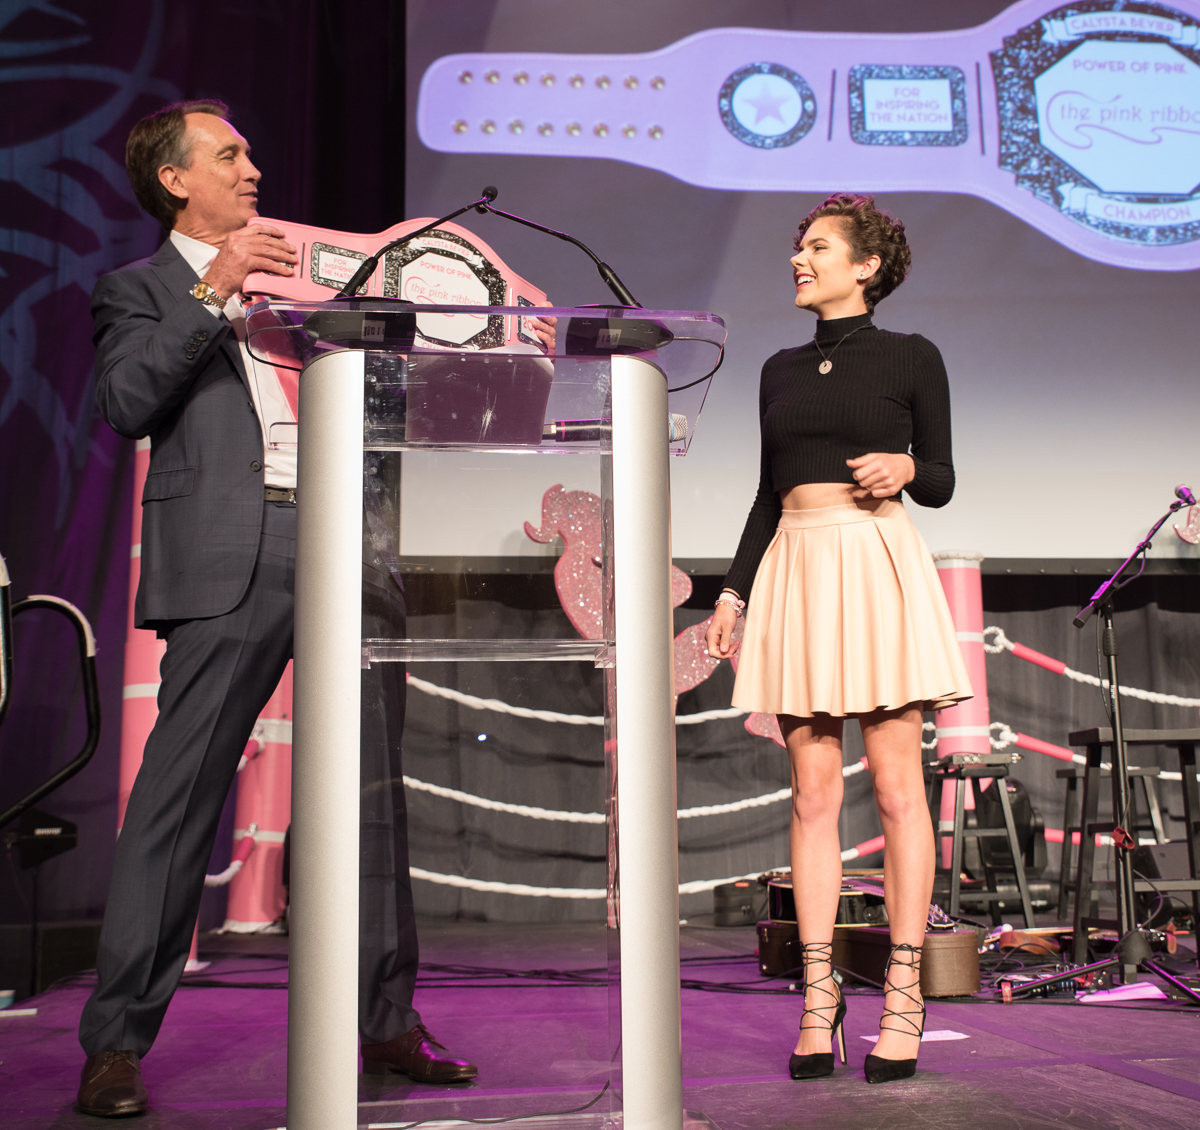 Calysta Bevier (Power of Pink Award Recipient) / Image: Sherry Lachelle Photography